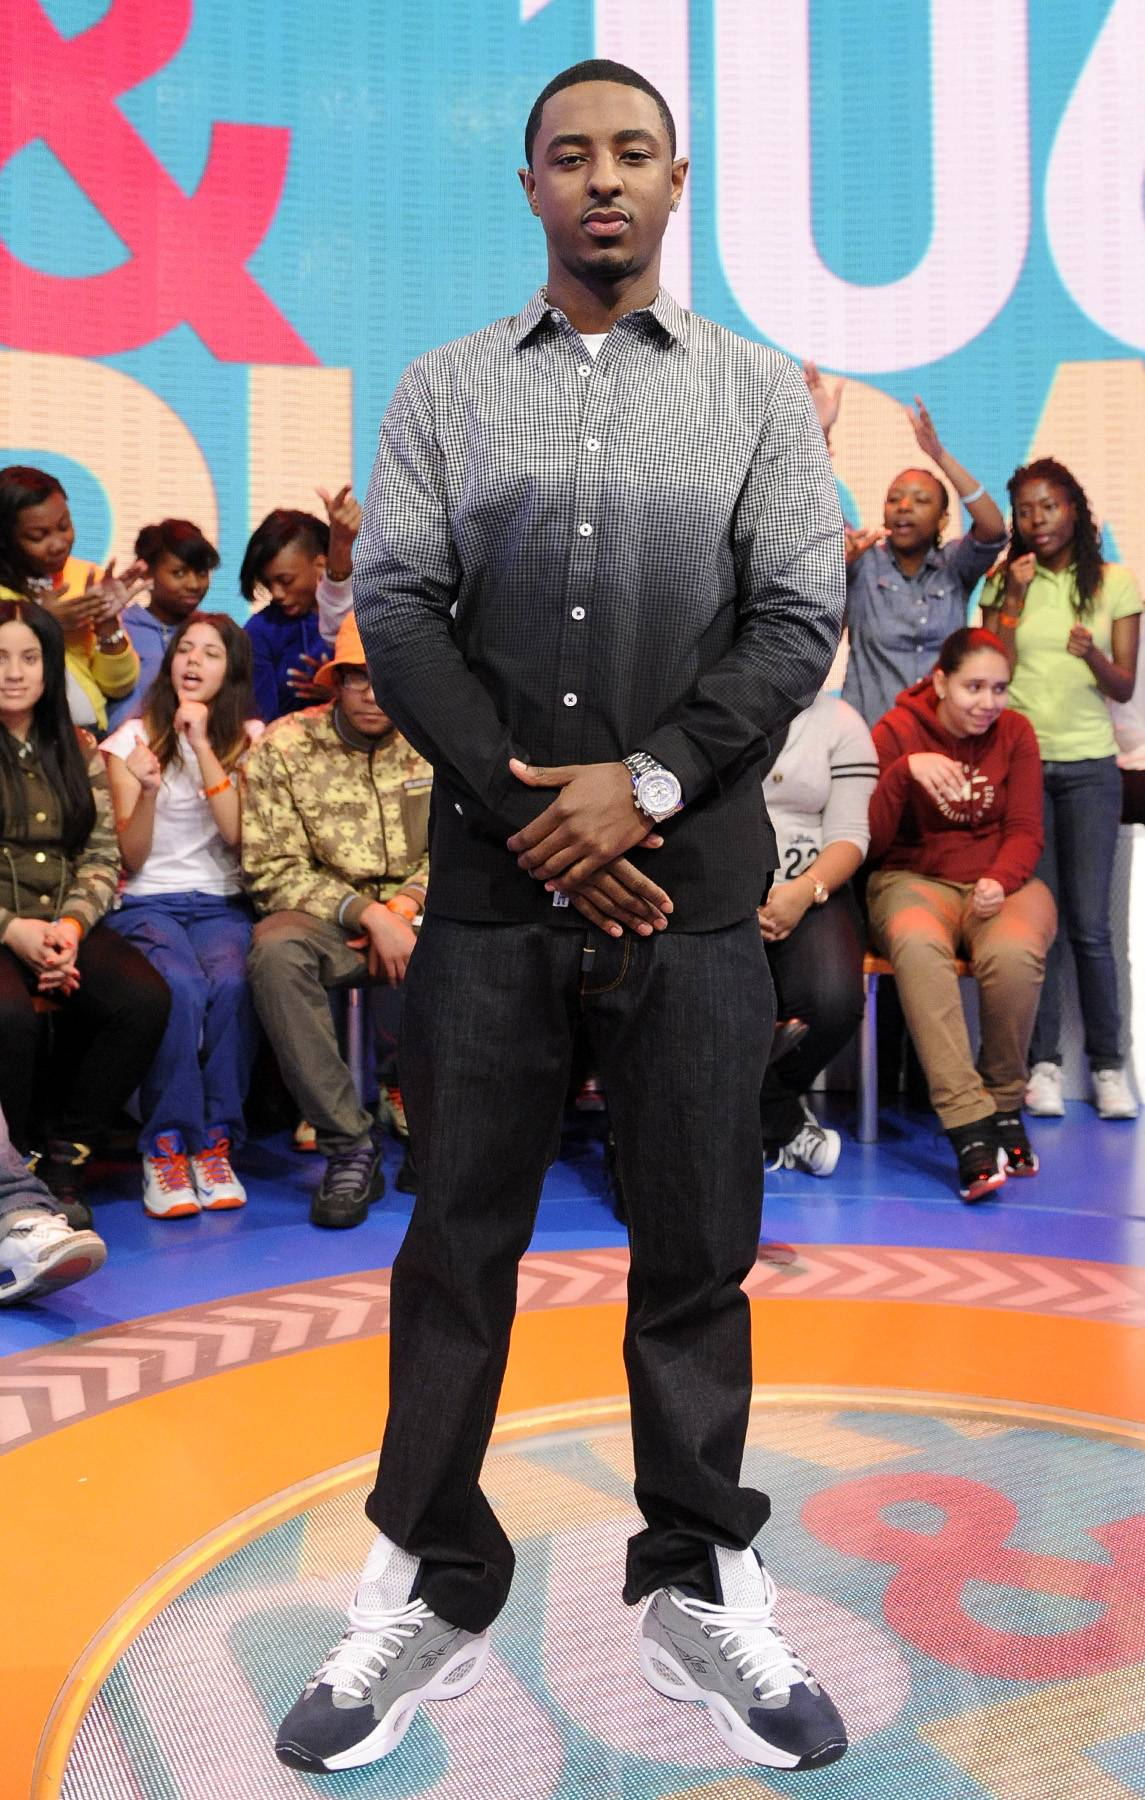 One Cool Dude - 106 & Park, March 11, 2013. (Photo: John Ricard / BET)